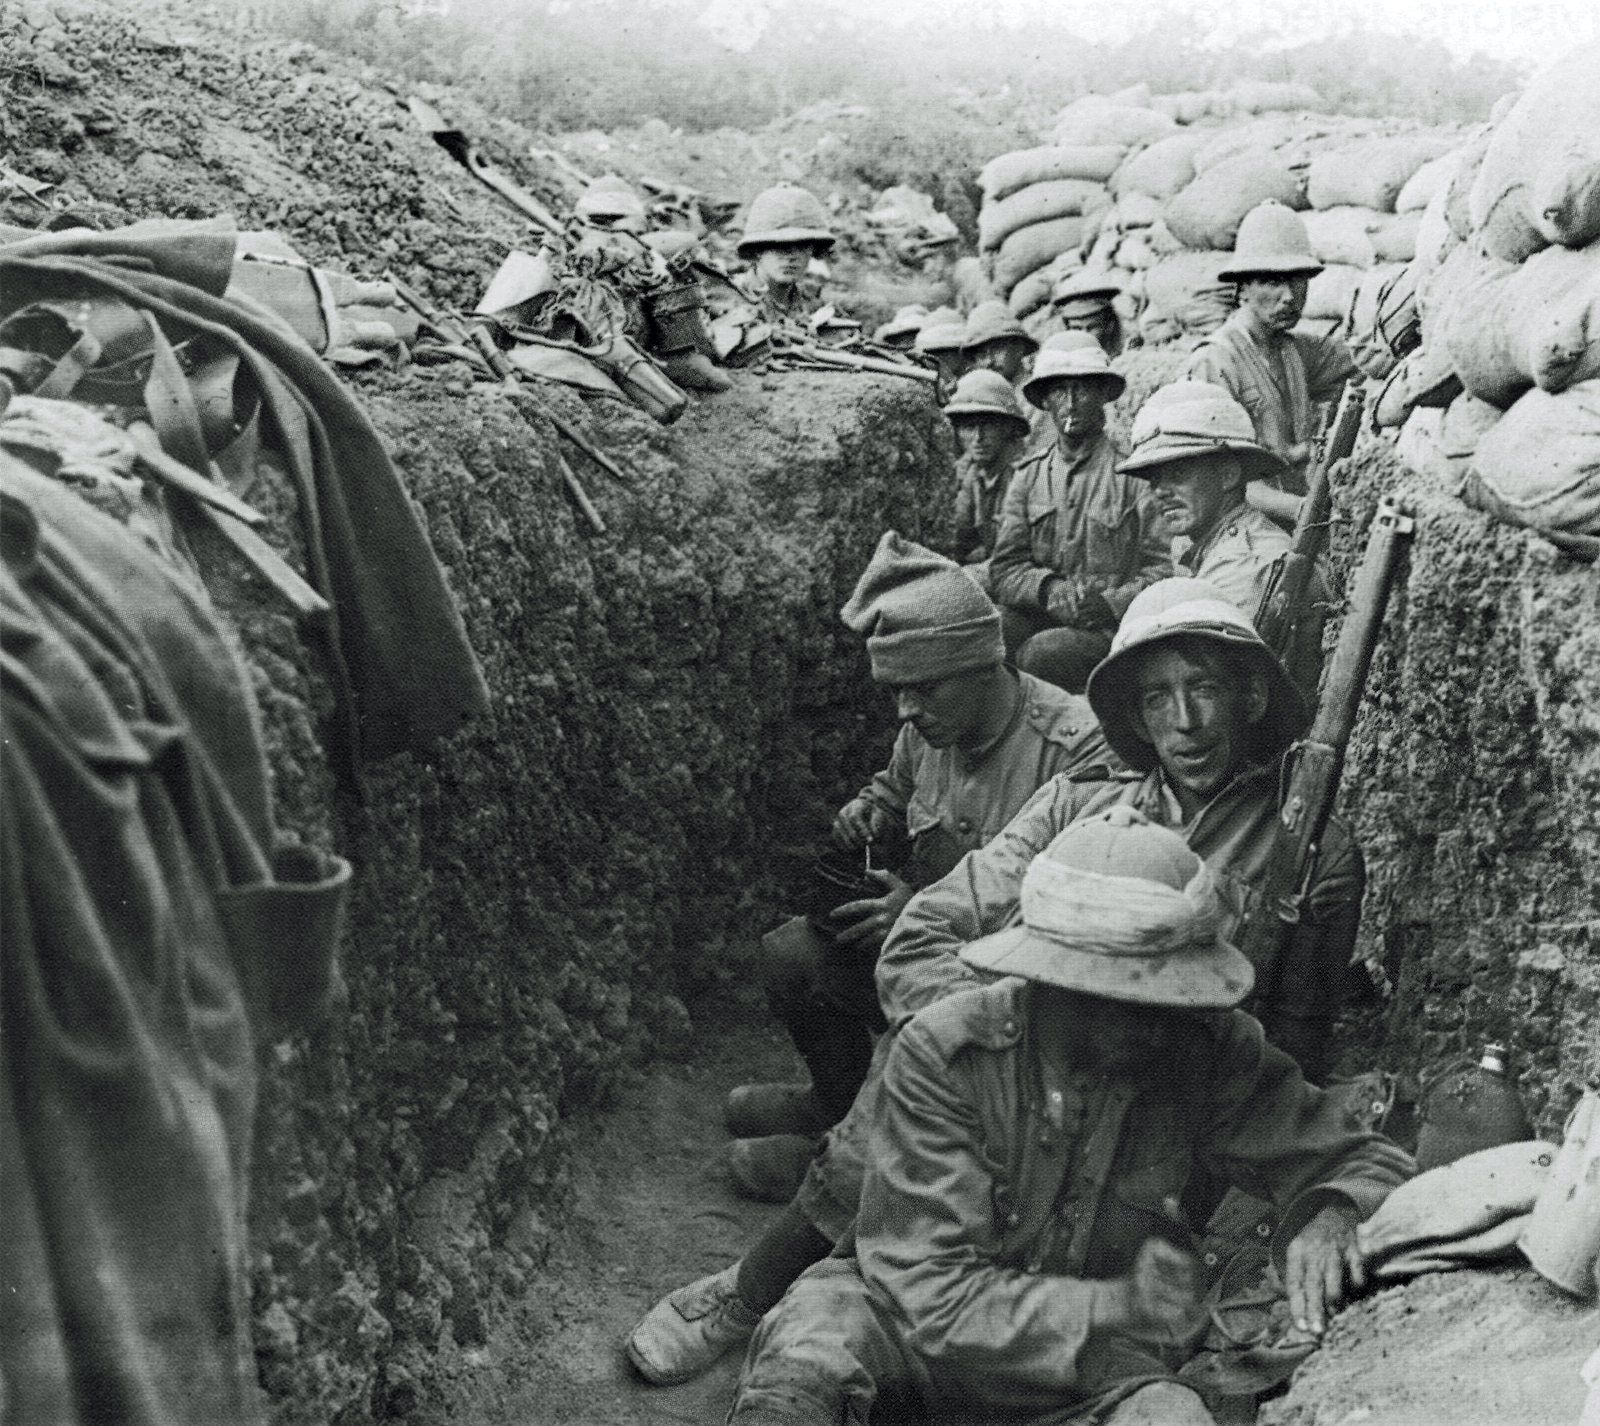 black and white photo of a group of soldiers standing and sitting